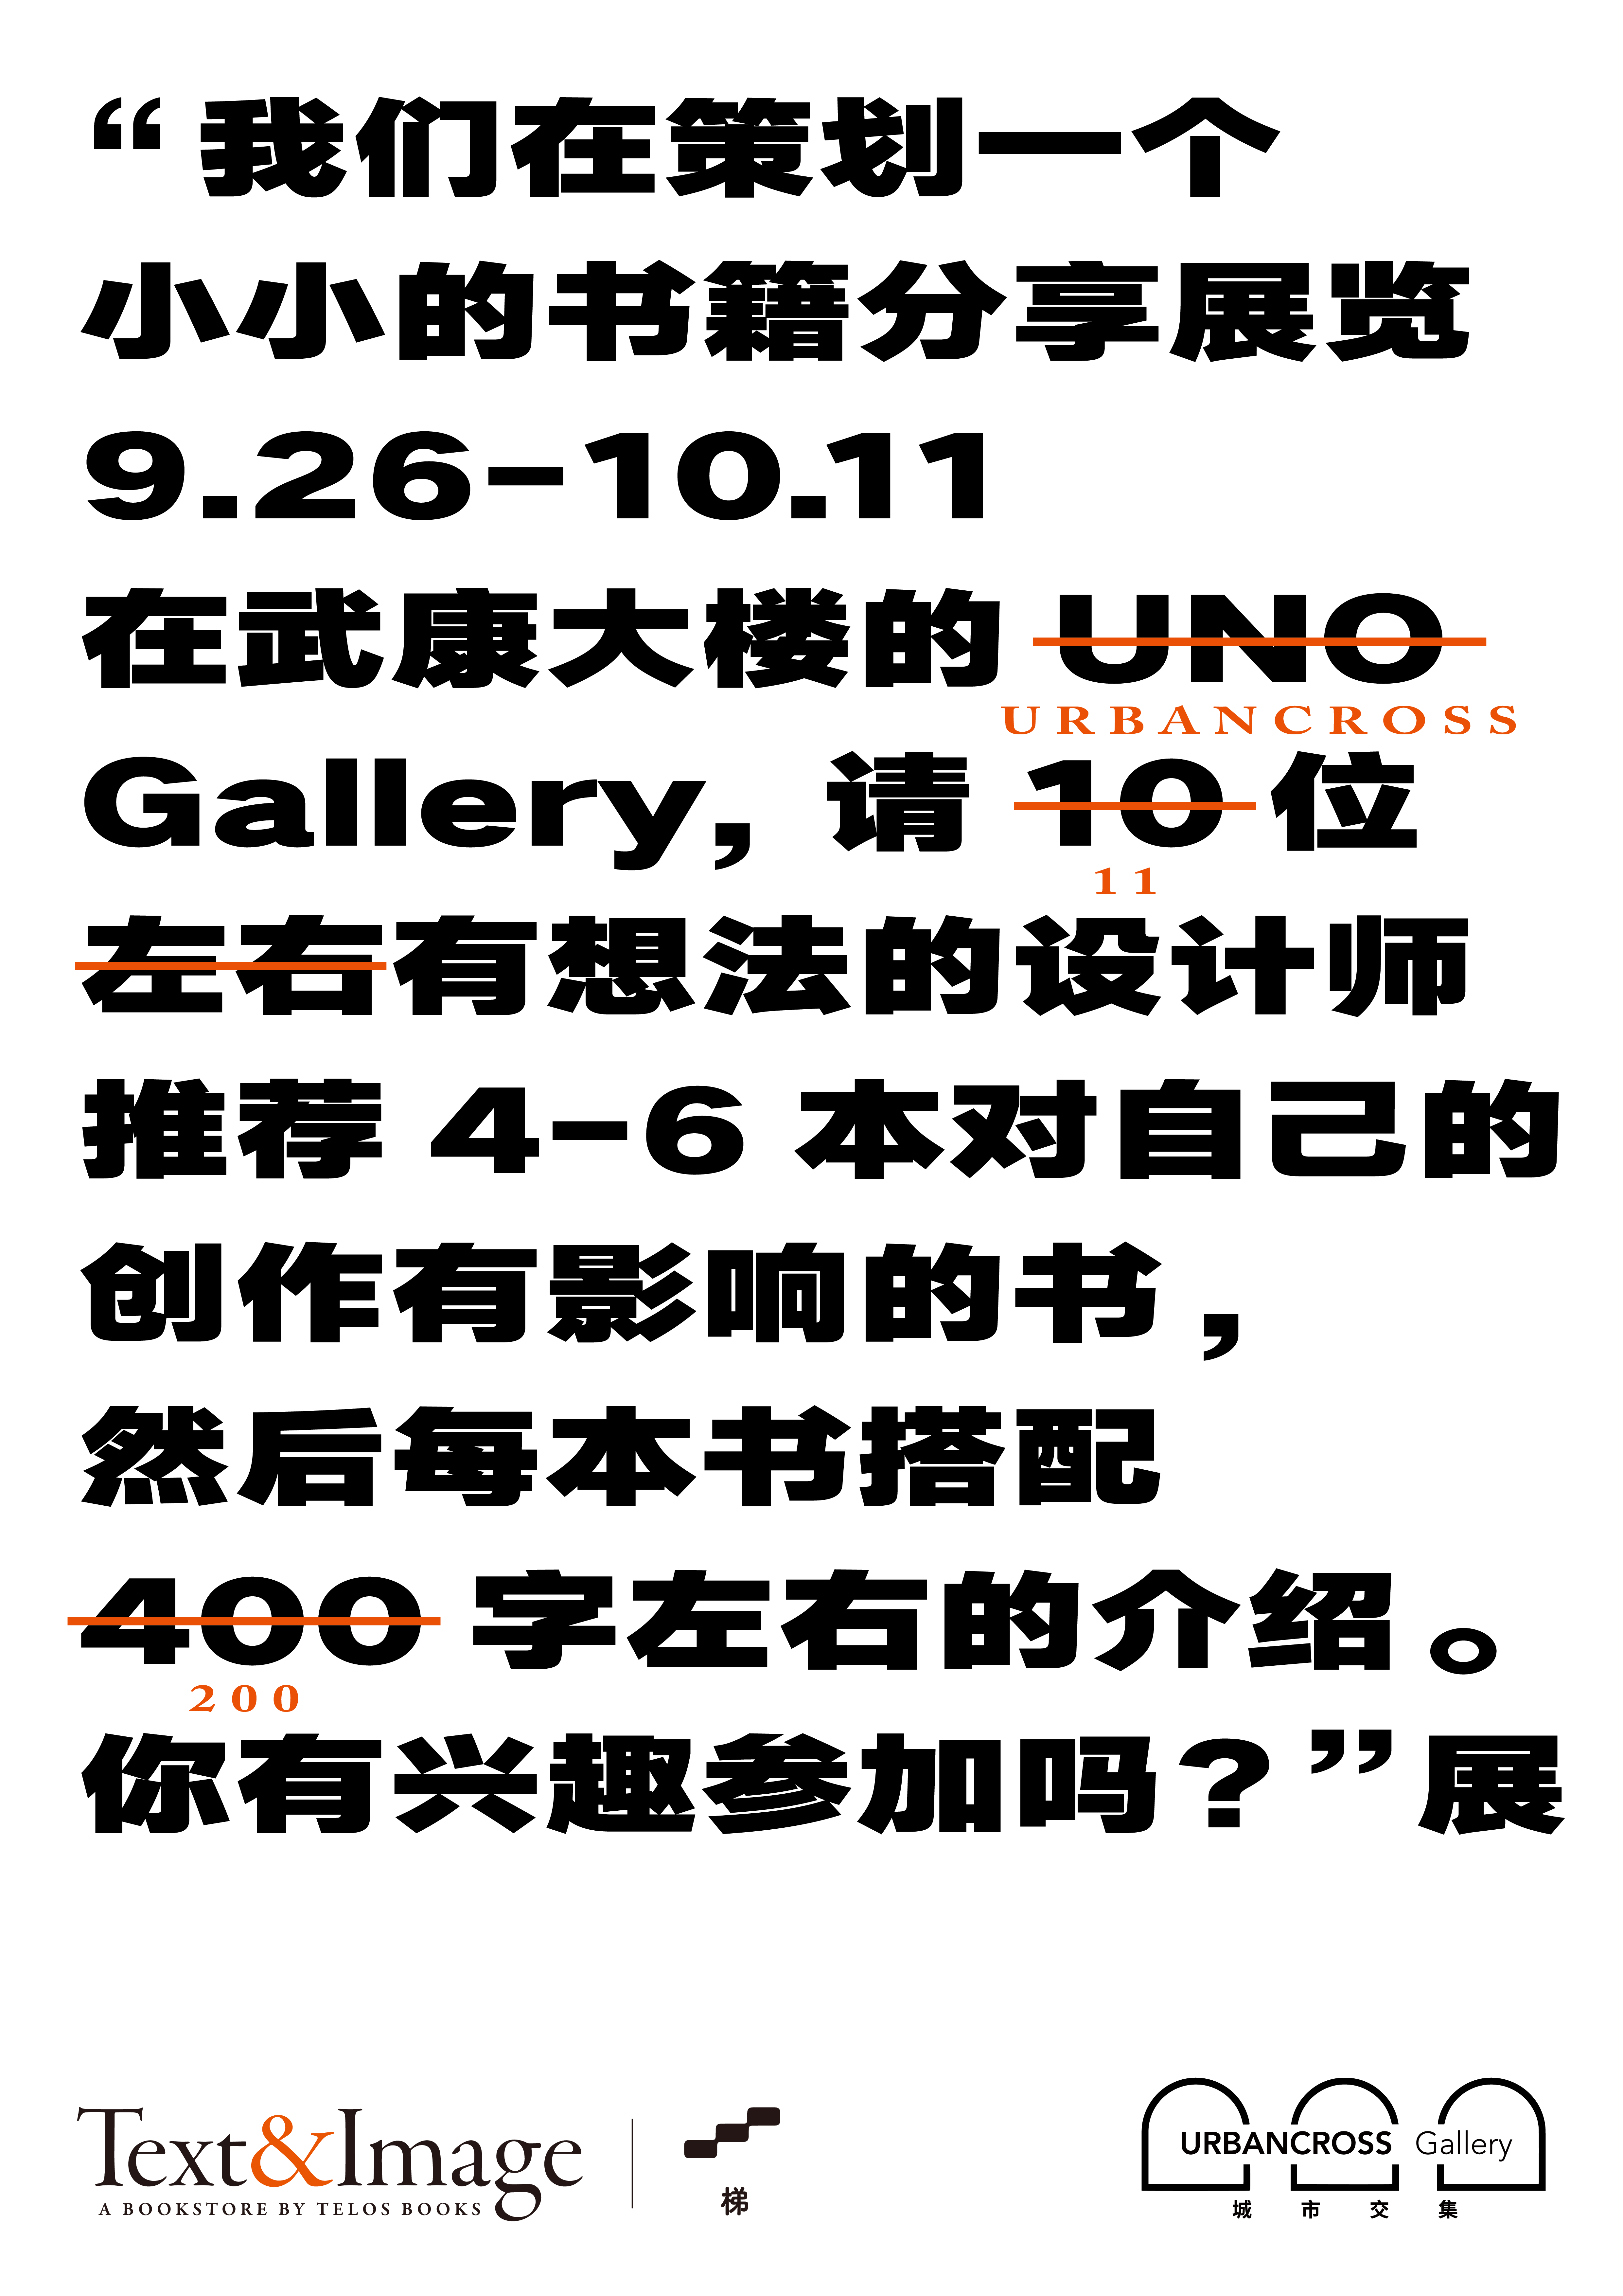 uno 展览海报